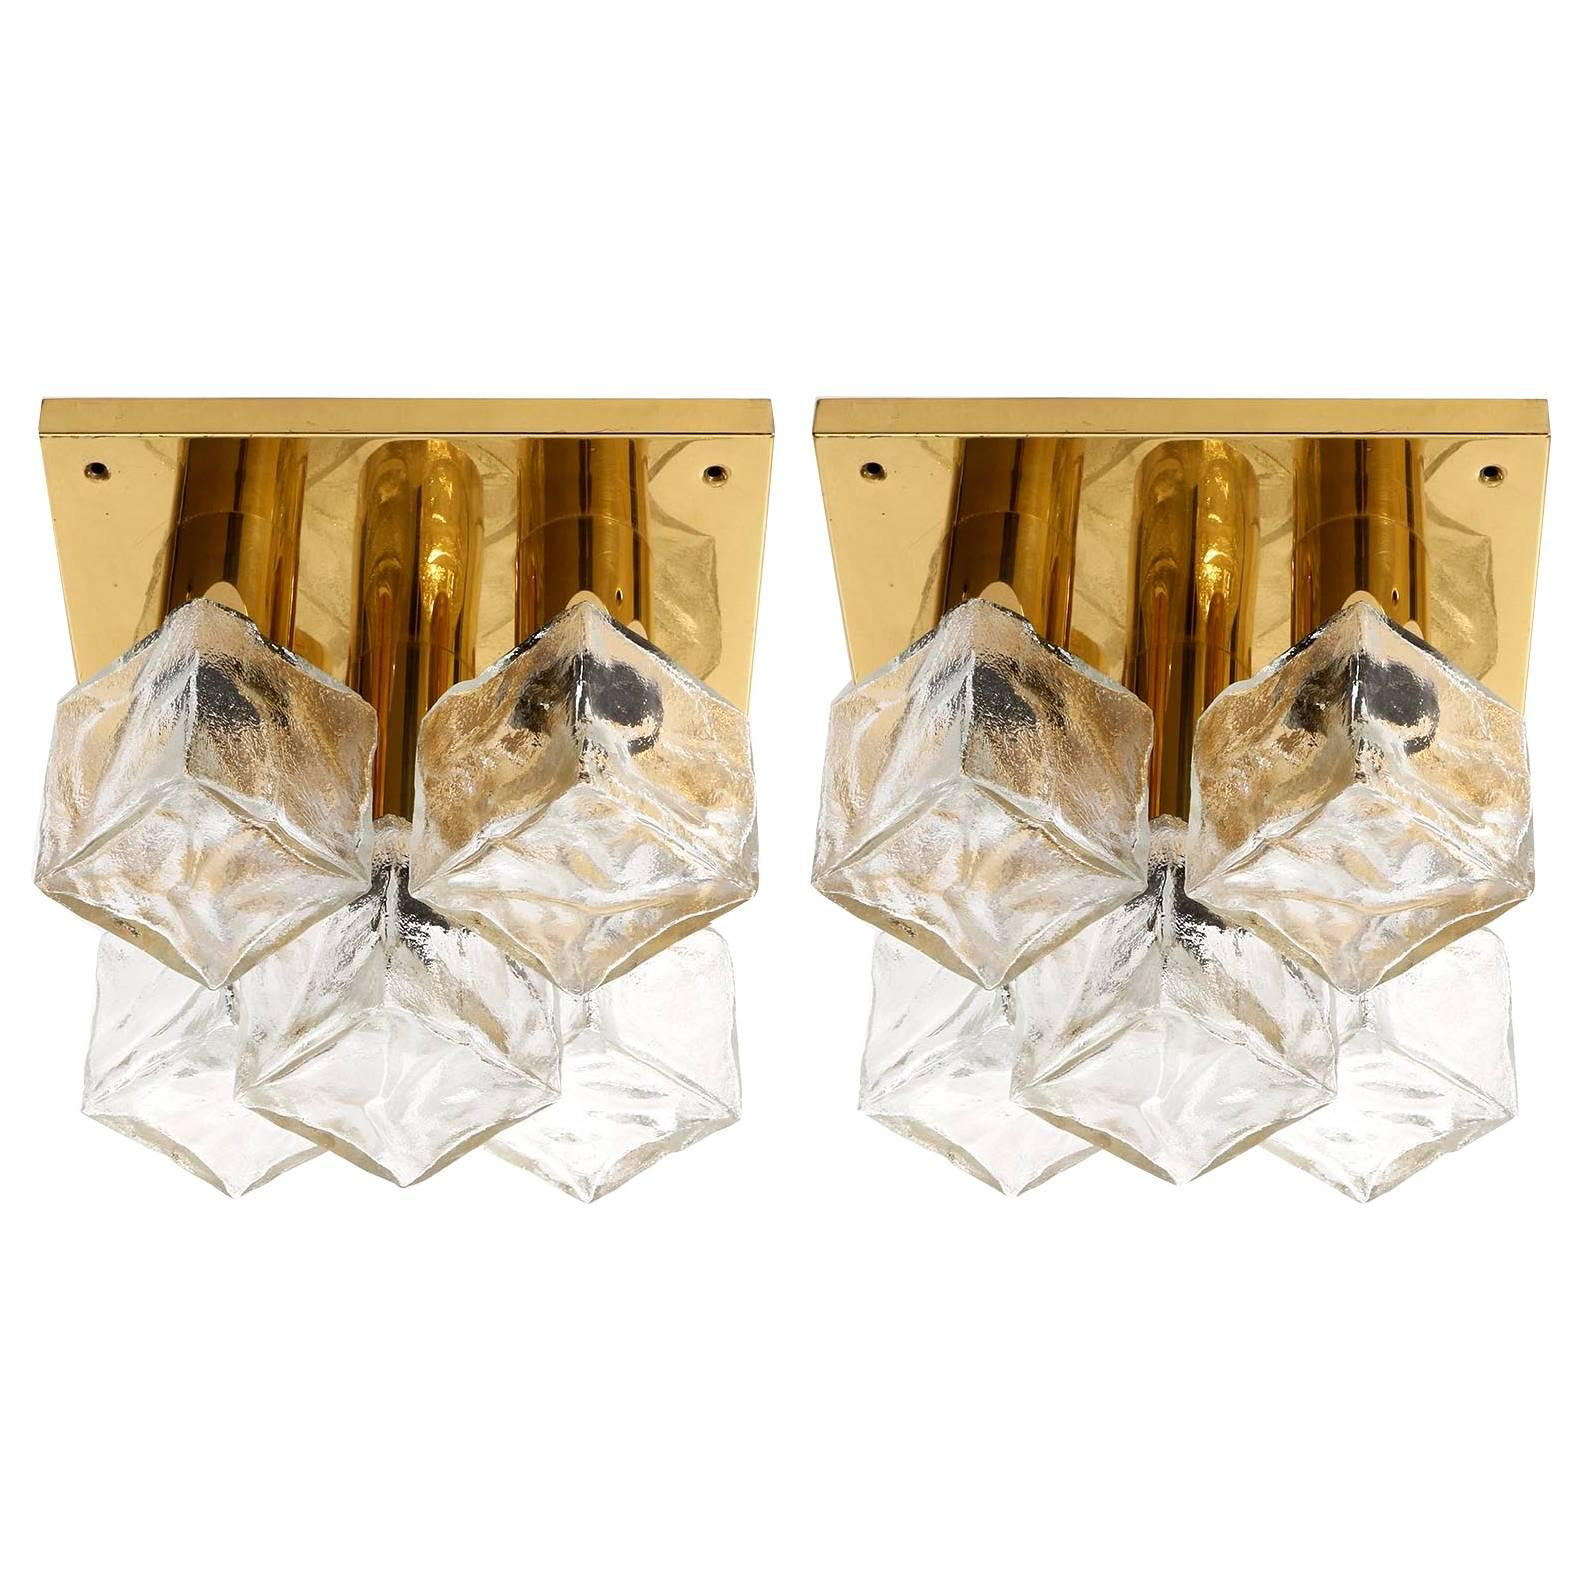 Two Modulare Kalmar Flush Mount Lights or Sconces, Brass and Ice Glass, 1960s